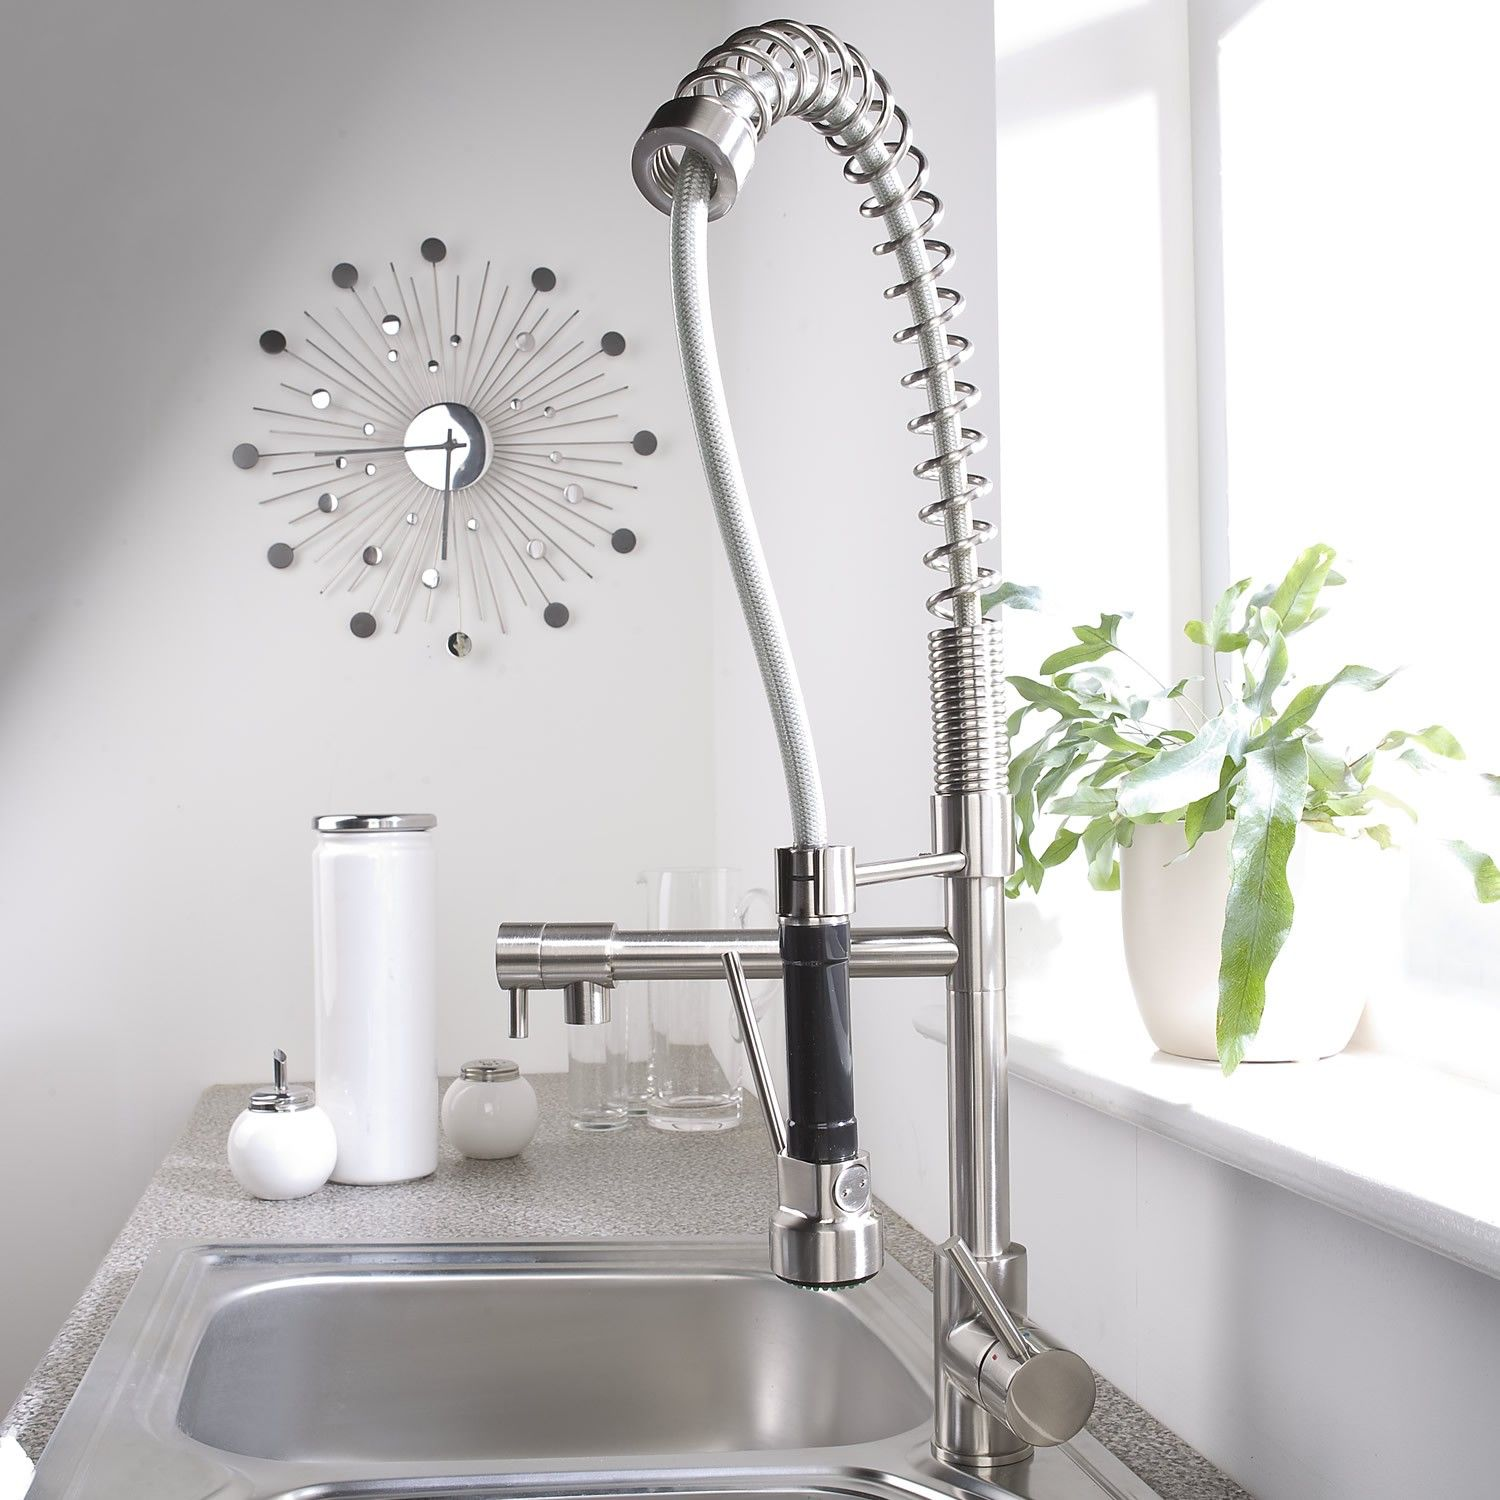 Kitchen Chrome Kitchen Faucet With Spray And Decorative Wall Clock